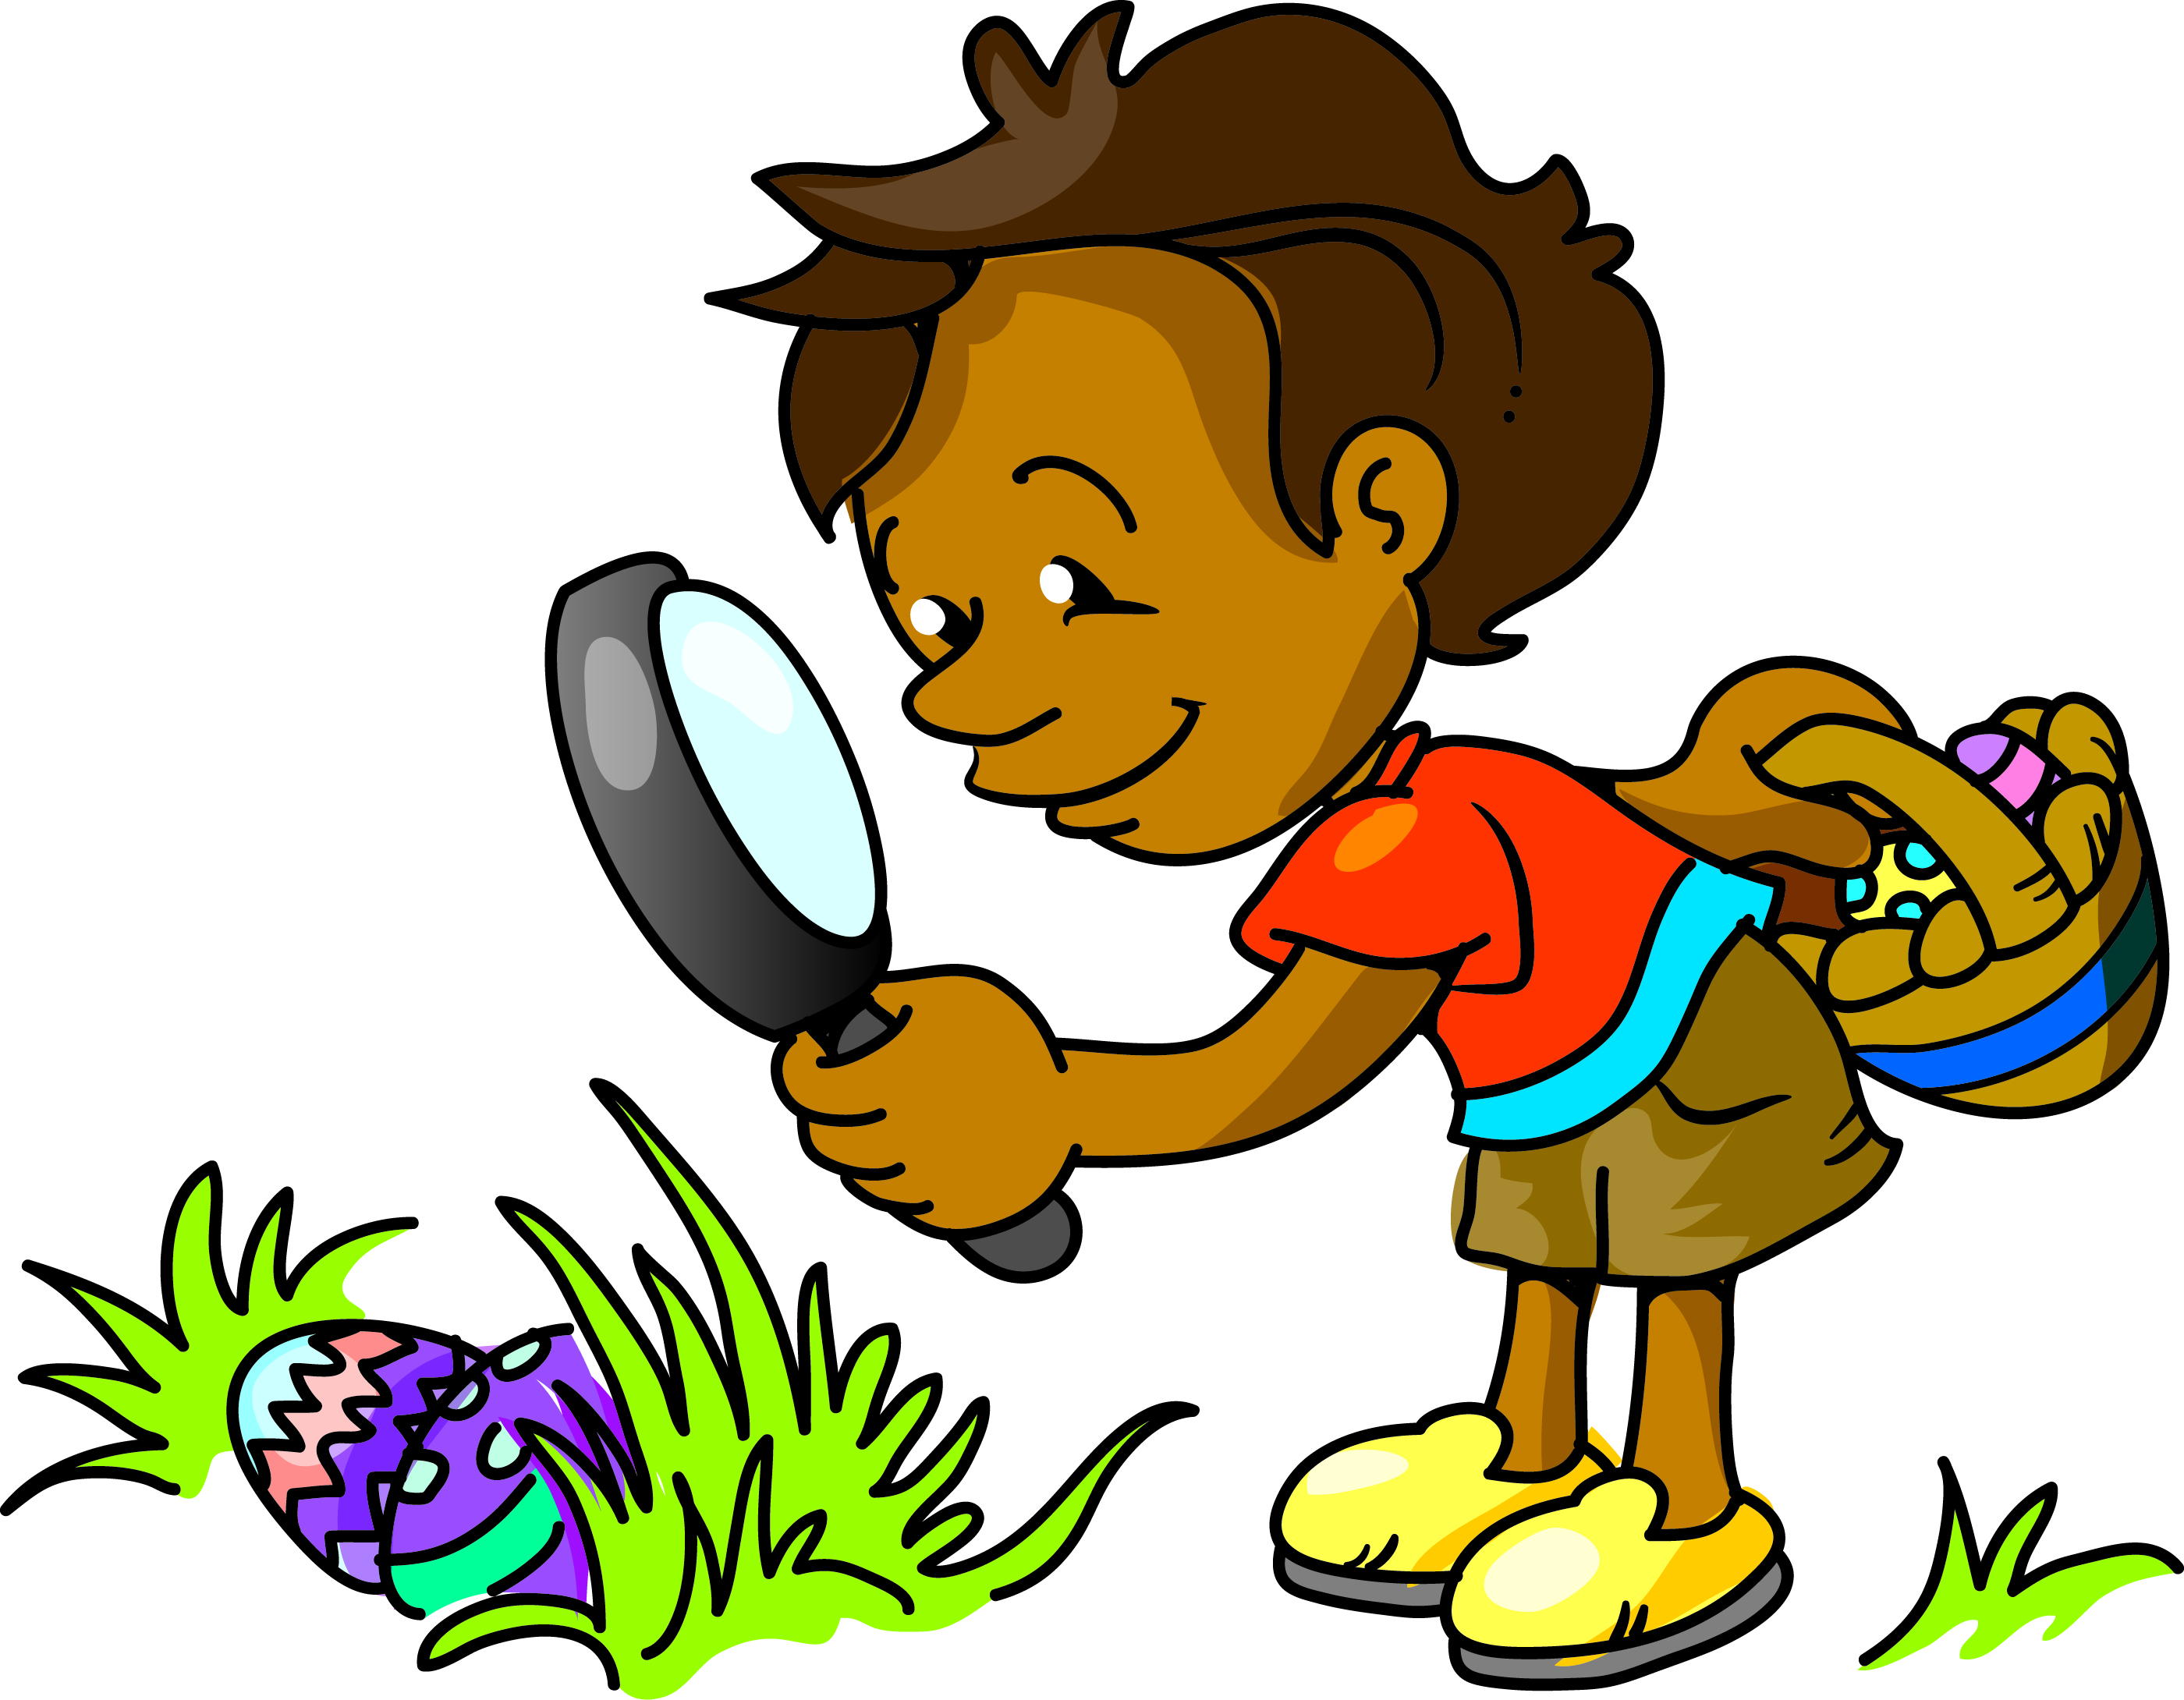 Annual easter egg hunt clipart graphic black and white library Google free clipart easter egg hunt - ClipartFest graphic black and white library